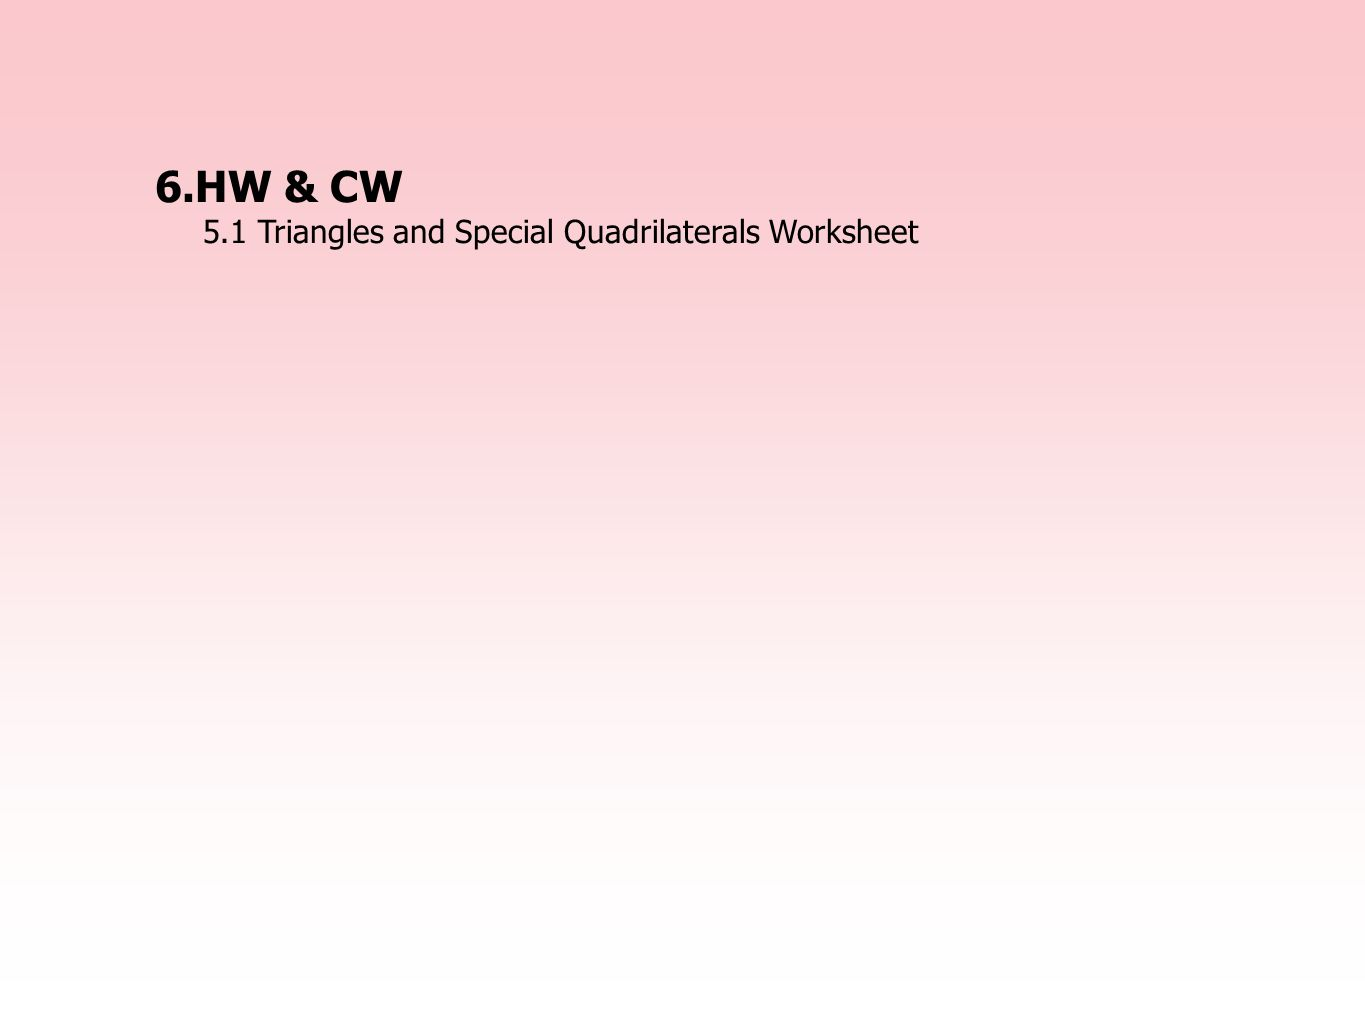 Worksheet On Quadrilaterals For Class 7